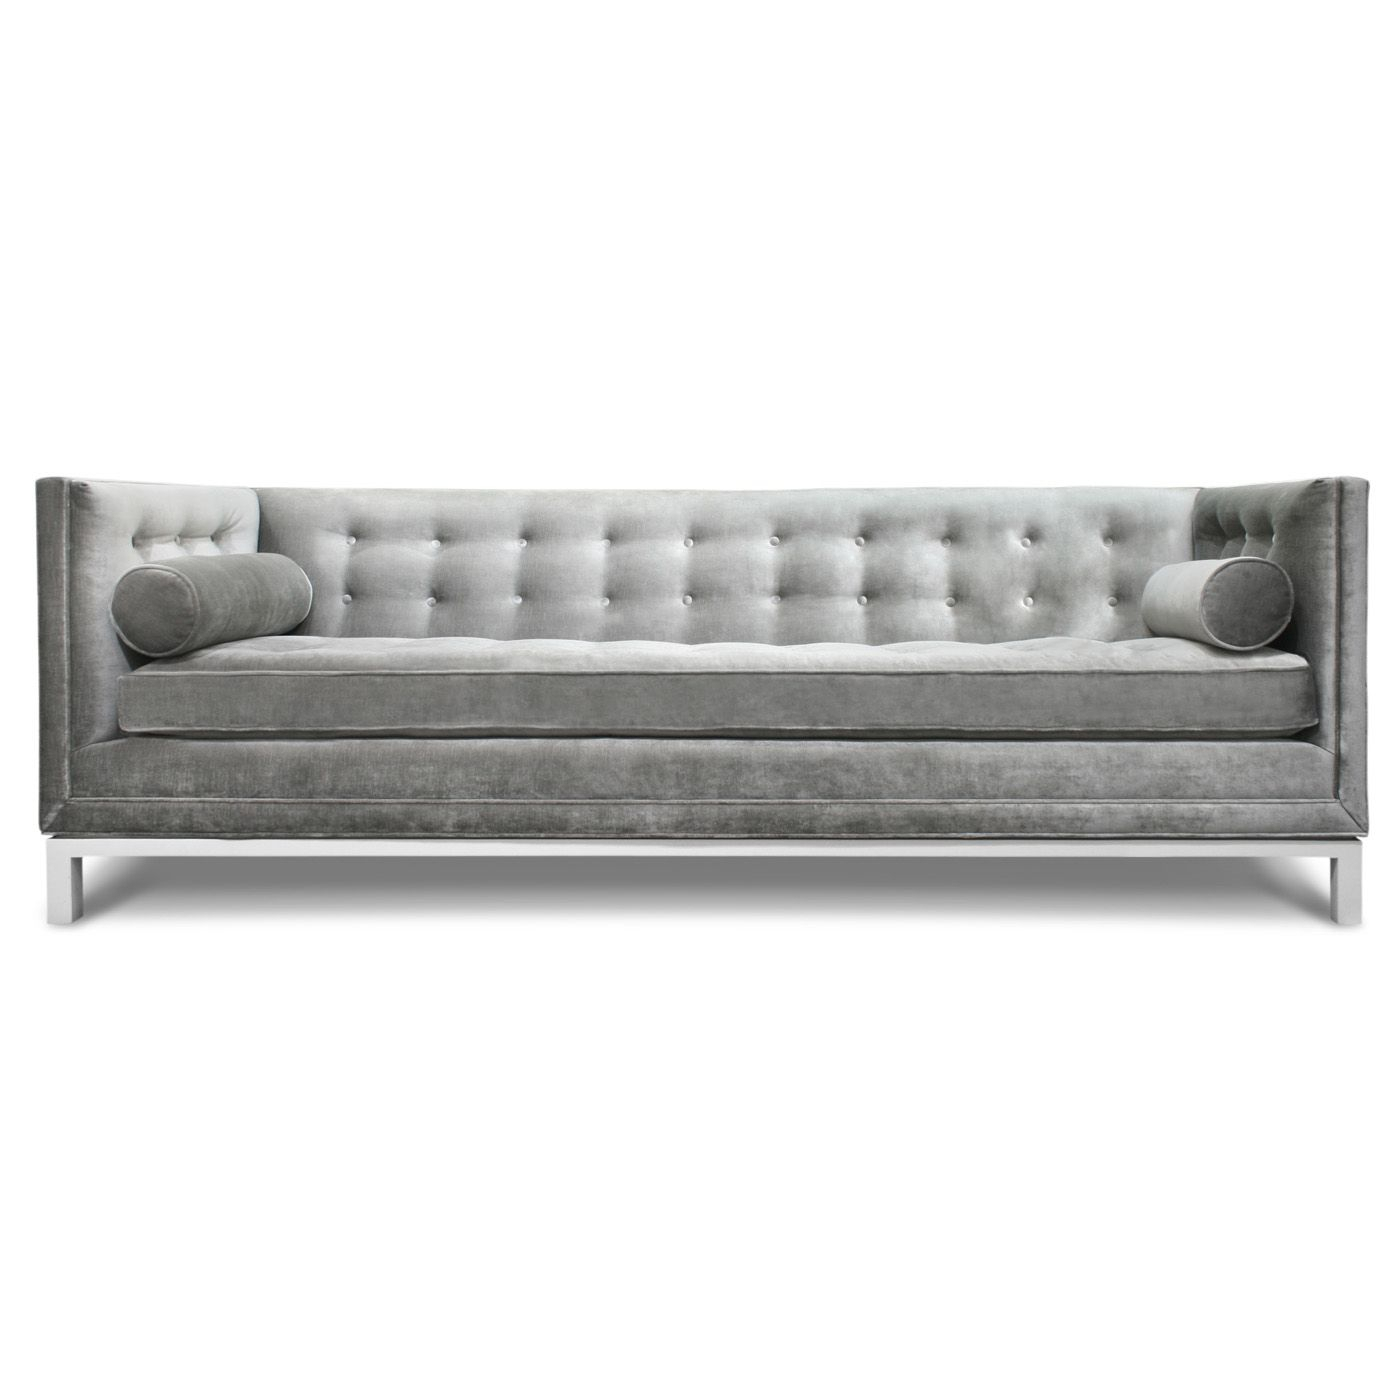 Sofas & Sectionals – Lampert Grand Sofa | Furniture | Pinterest With Alder Grande Ii Sofa Chairs (Image 18 of 20)